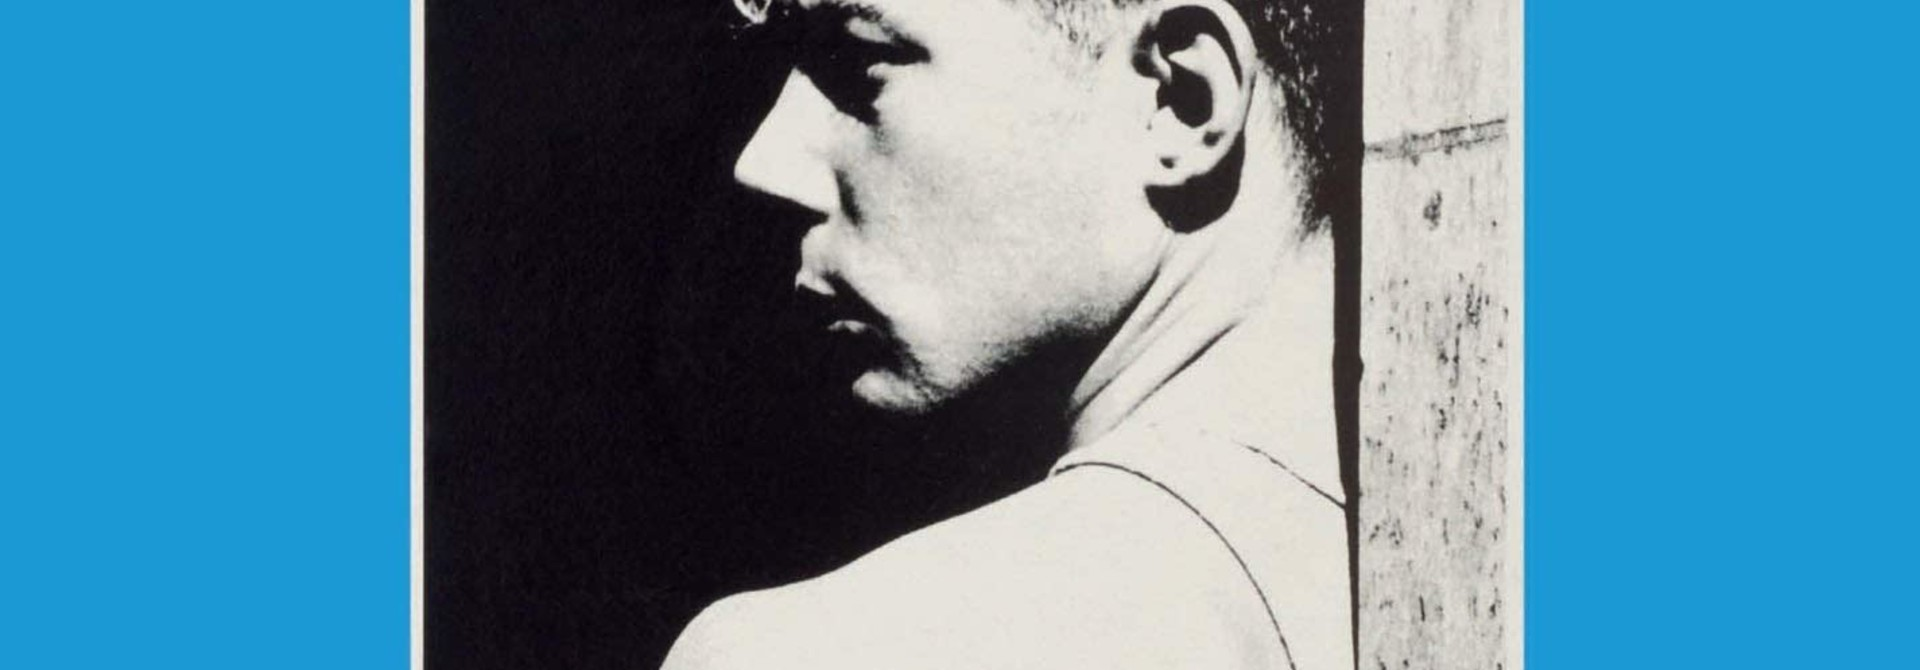 The Smiths • Hatful of Hollow